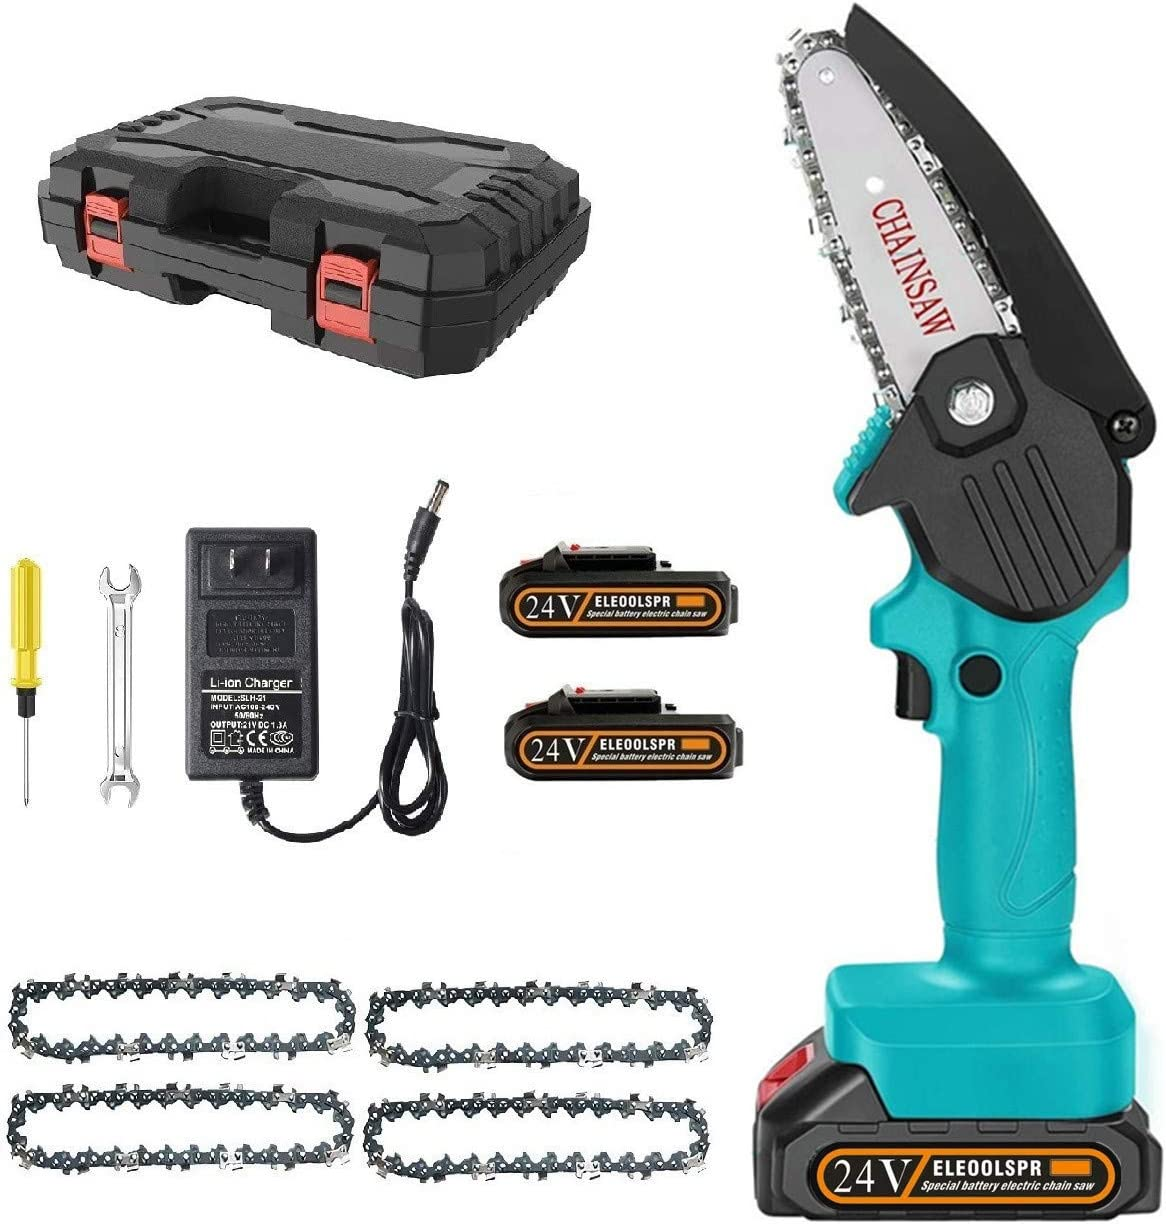 Mini Chainsaw Cheap super special price Set Handheld Free shipping on posting reviews Cordless Protable Electric